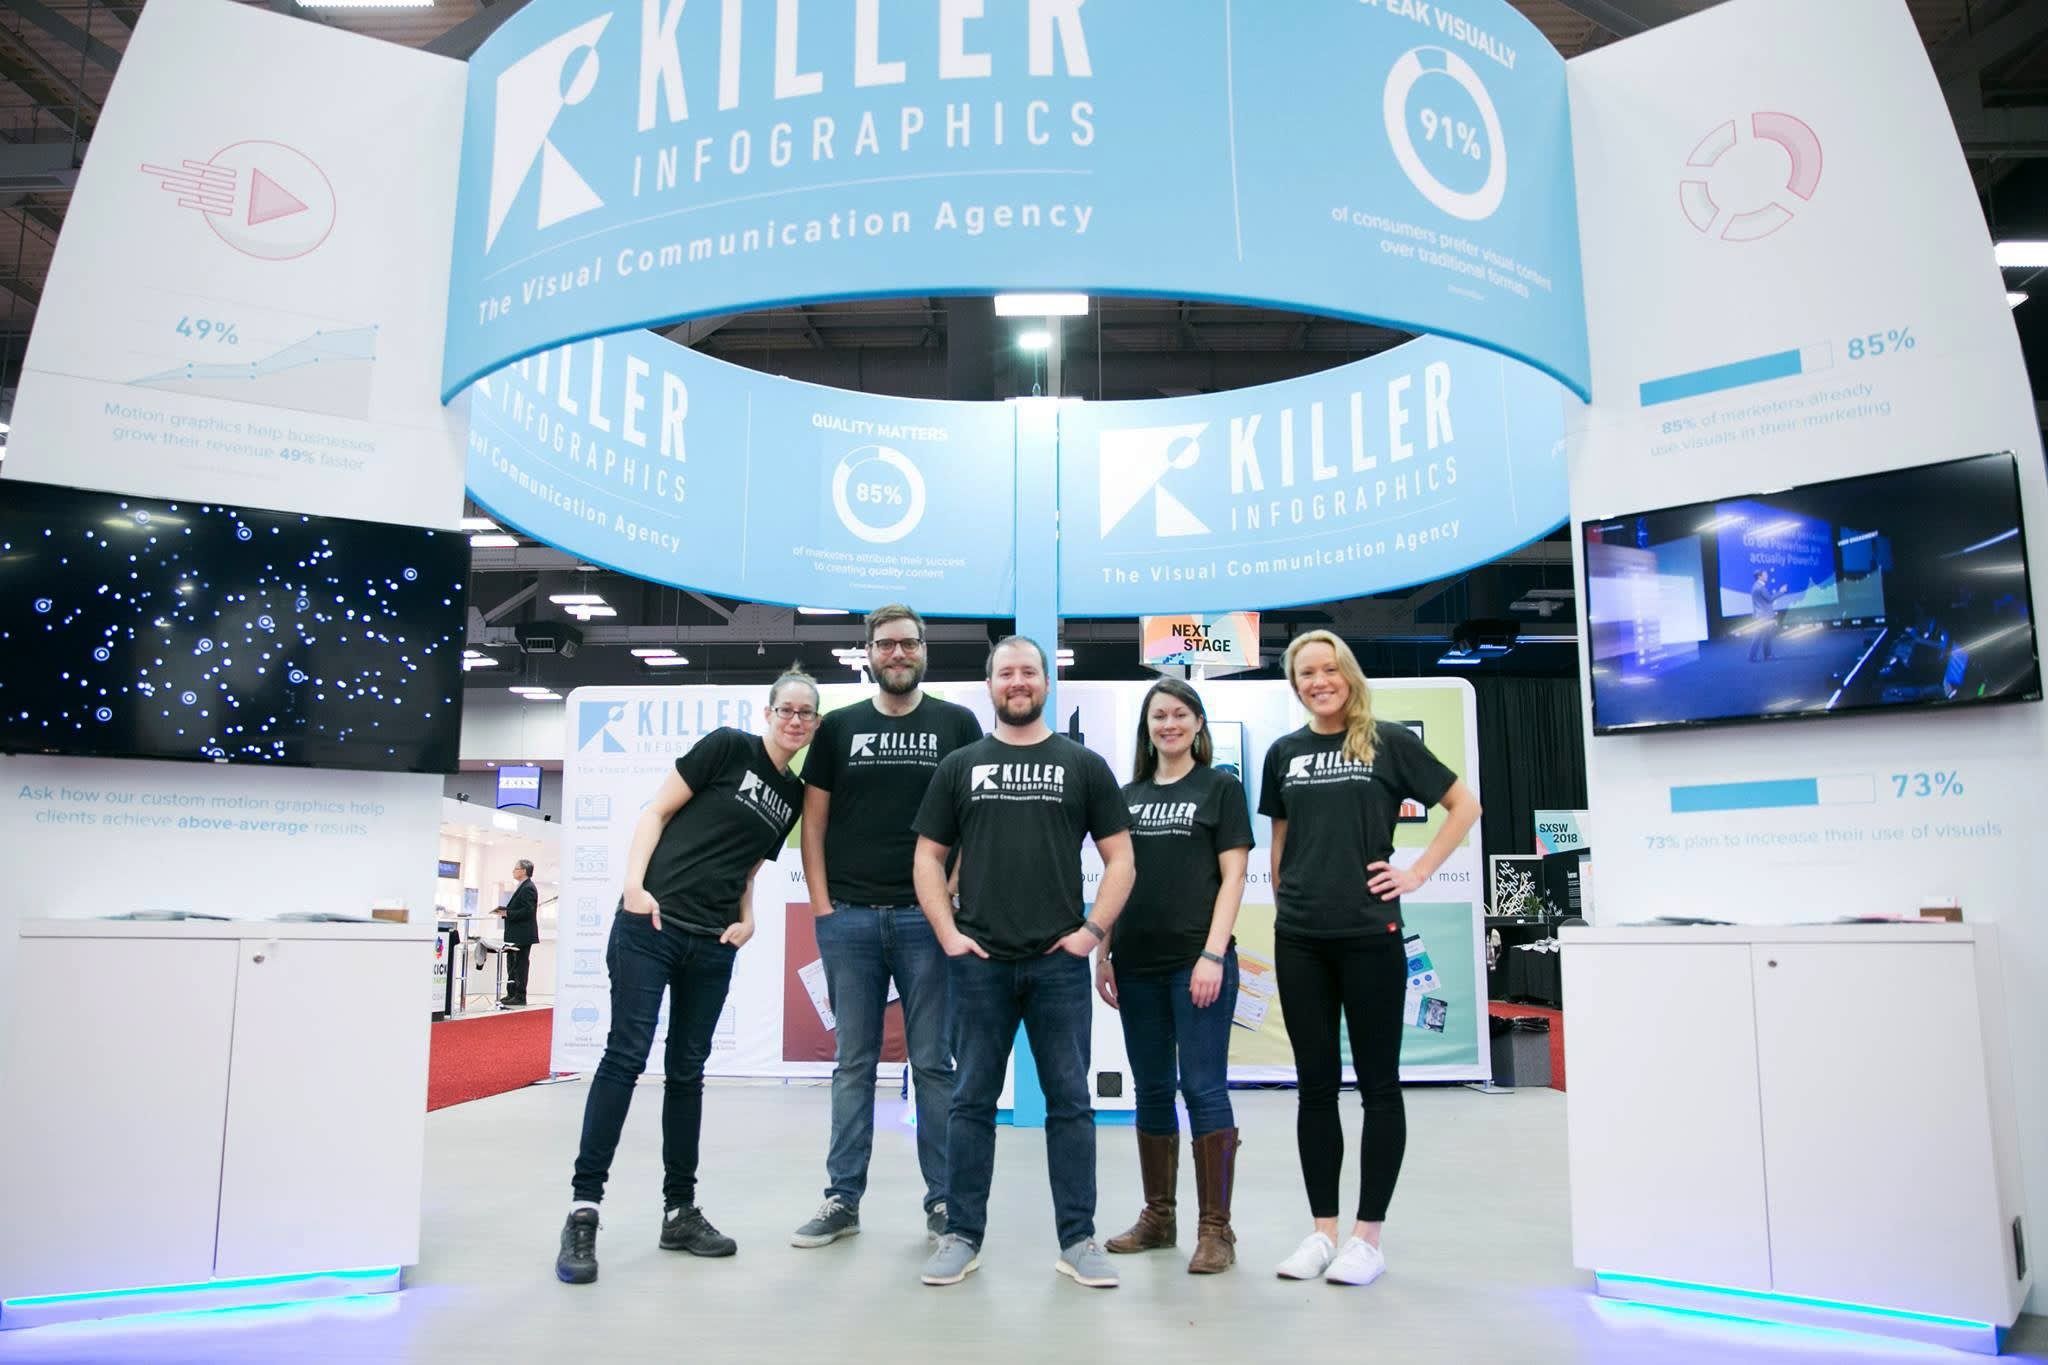 Killer Infographics SXSW 2018 Booth